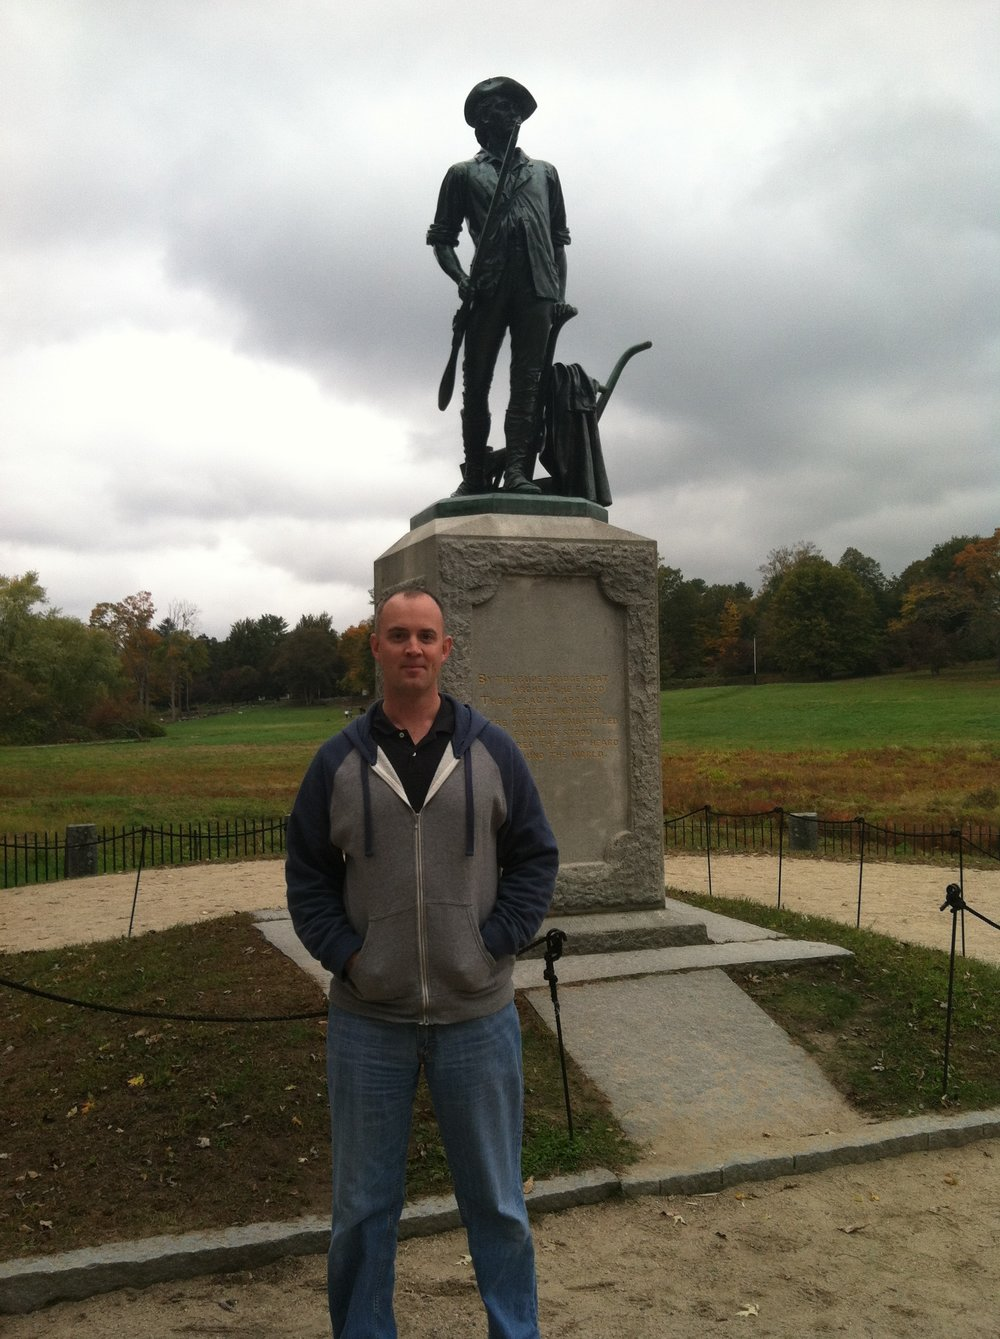 Me in Concord, Massachusetts at Minuteman National Park, 2013